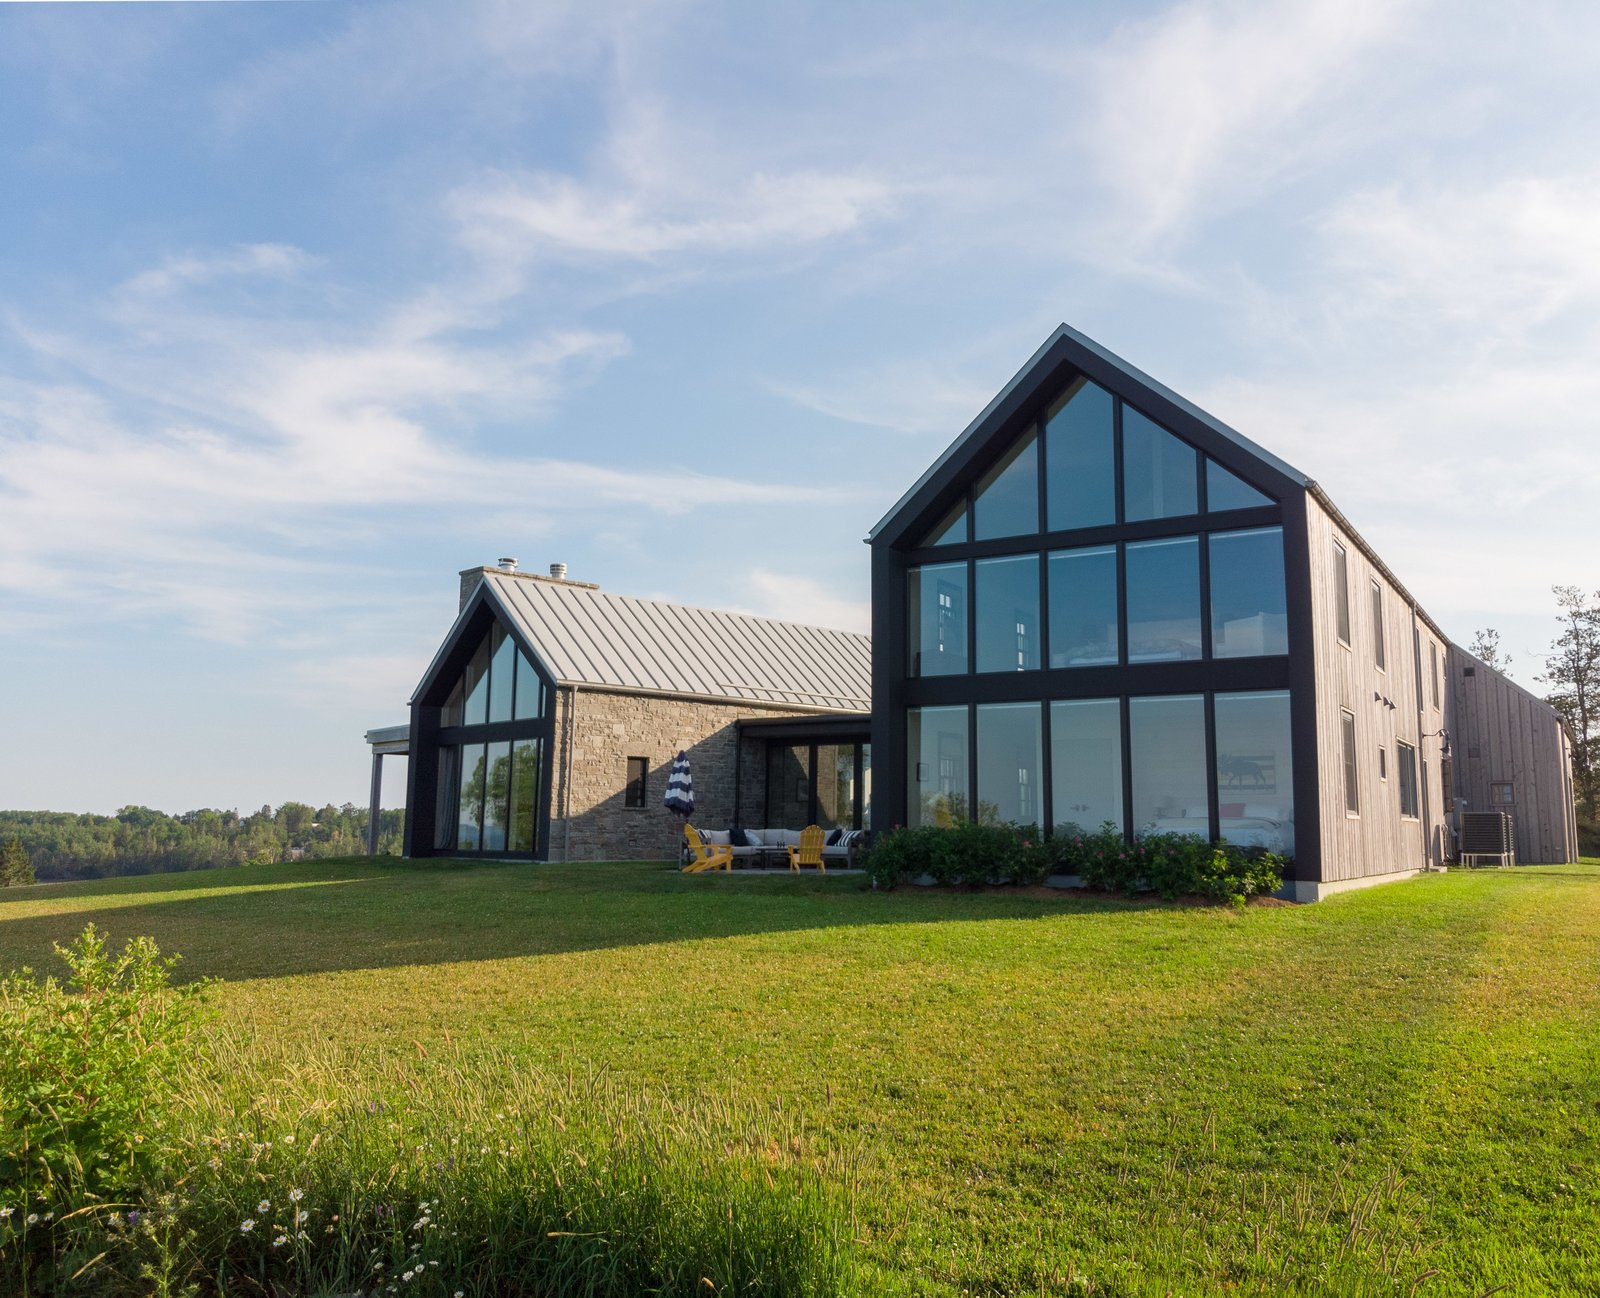 Exterior, Farmhouse Building Type, House Building Type, Metal Roof Material, Stone Siding Material, Wood Siding Material, Glass Siding Material, and Gable RoofLine  Best Photos from One Couple's Contemporary Coastal Retreat Celebrates Their Irish Roots